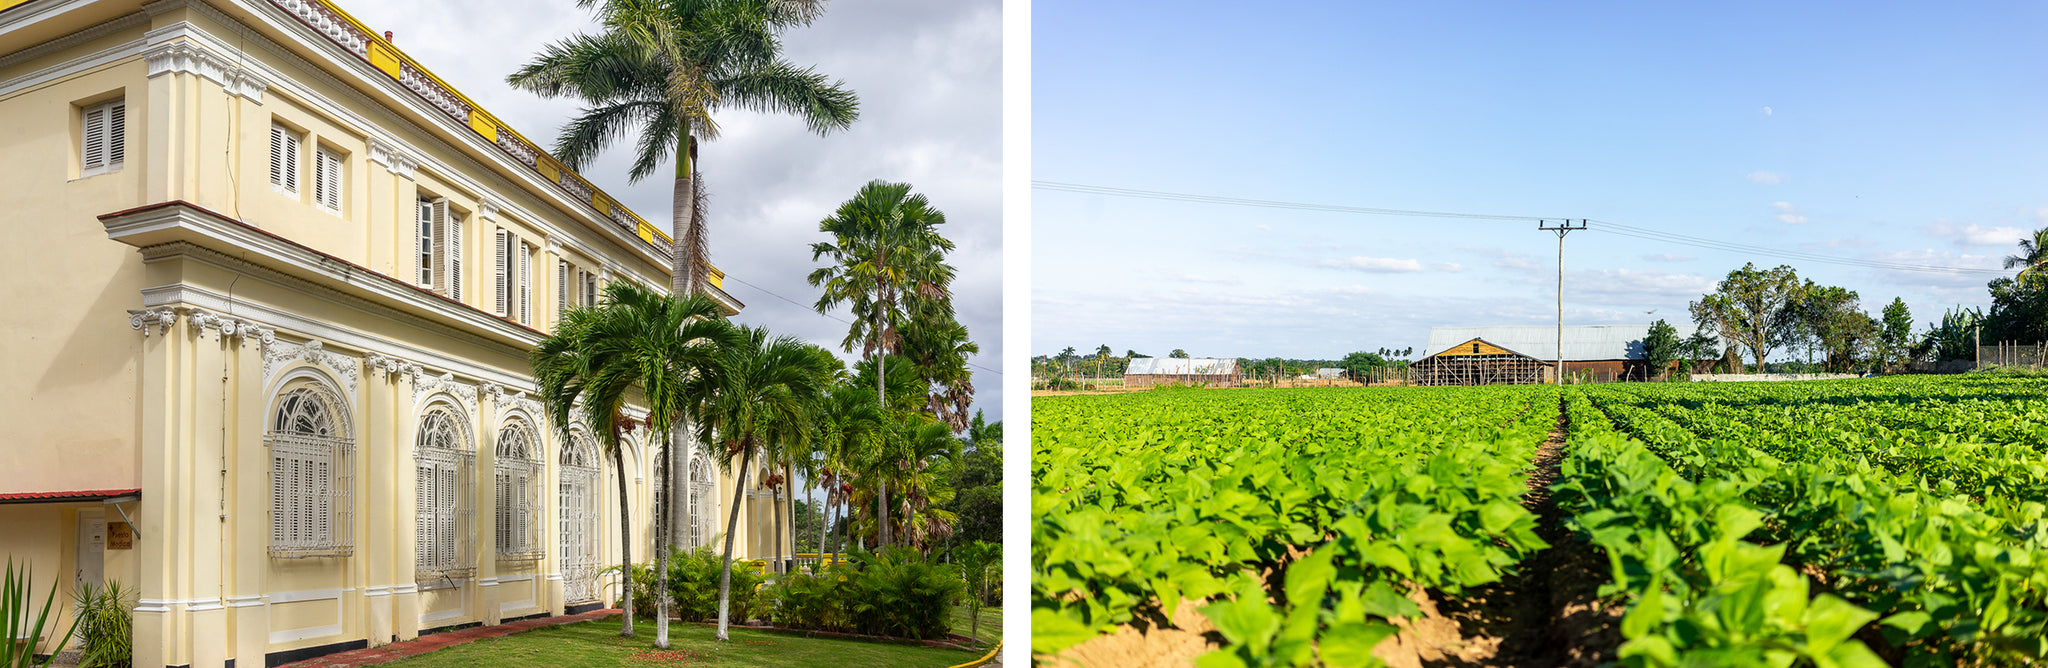 the outside of el laguito factory tobacco plantations